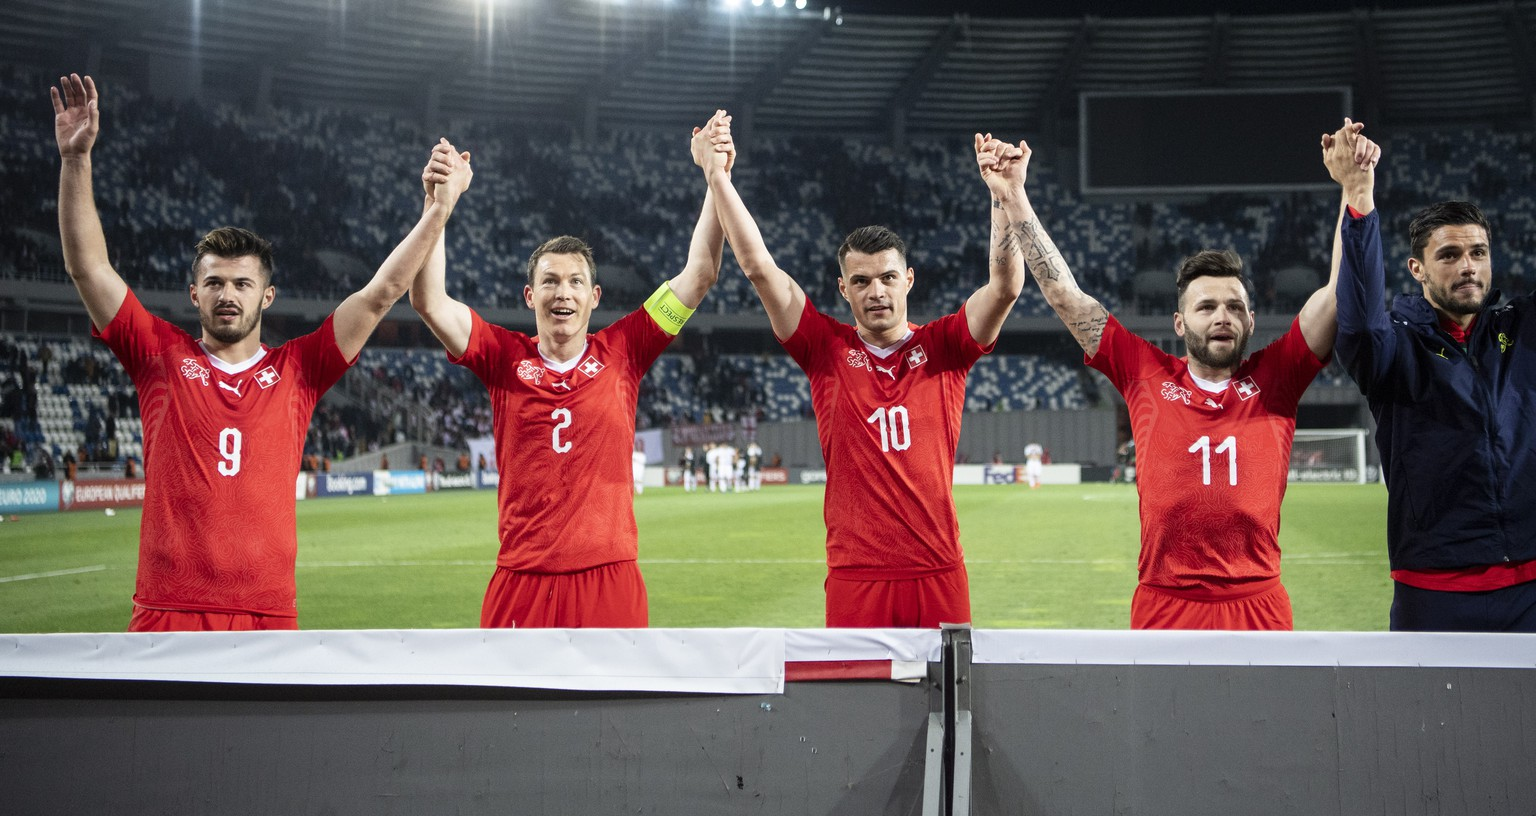 epa07458667 The team of Switzerland reacts after the UEFA Euro 2020 qualifier Group D soccer match between Georgia and Switzerland at the Boris Paichadze National Stadium in Tbilisi, Georgia, 23 March 2019.  EPA/ENNIO LEANZA